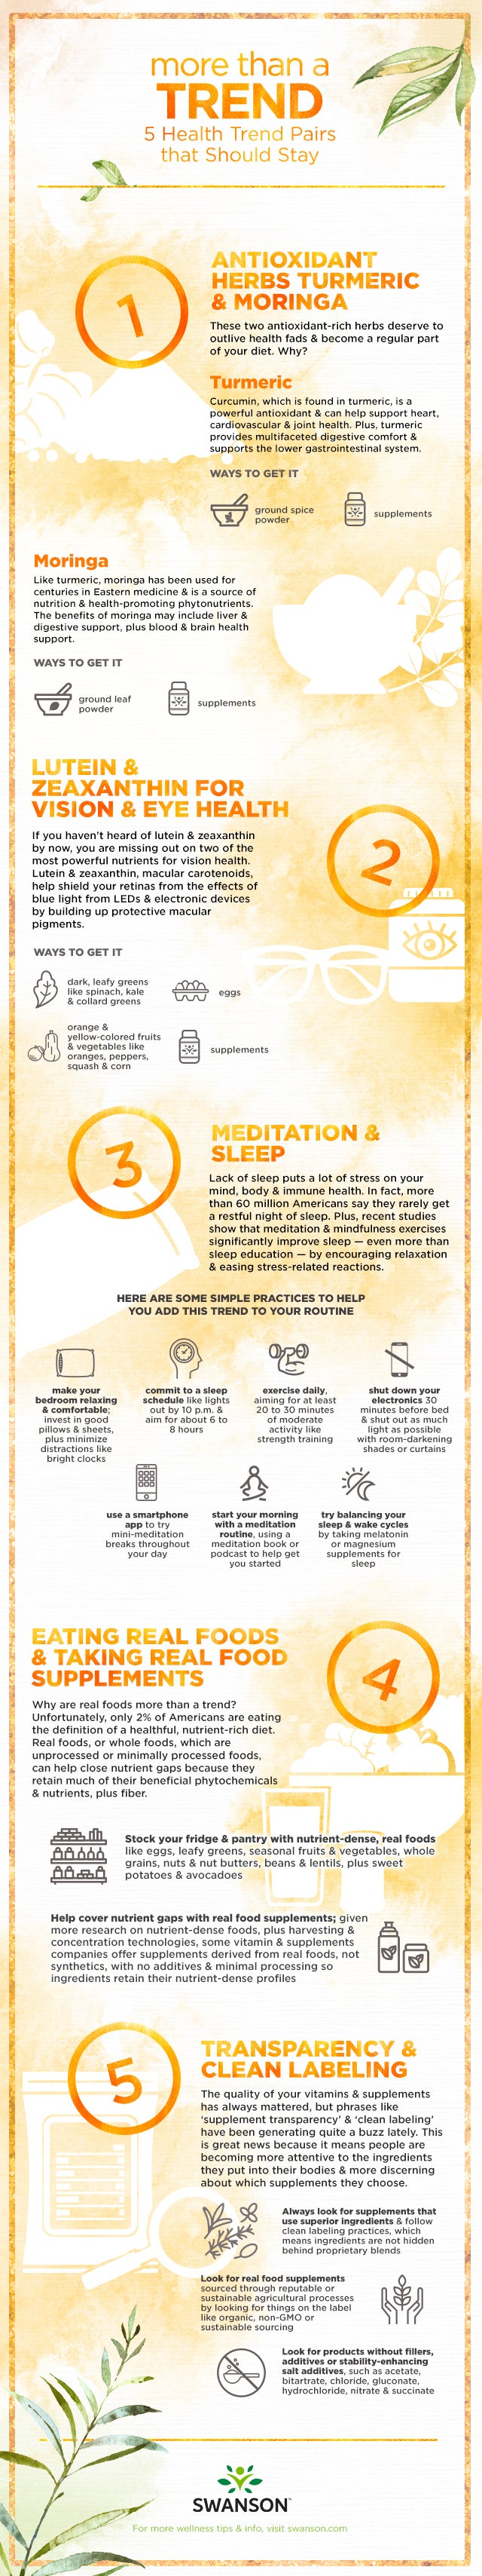 Five Health Trends That Should Stay Infographic